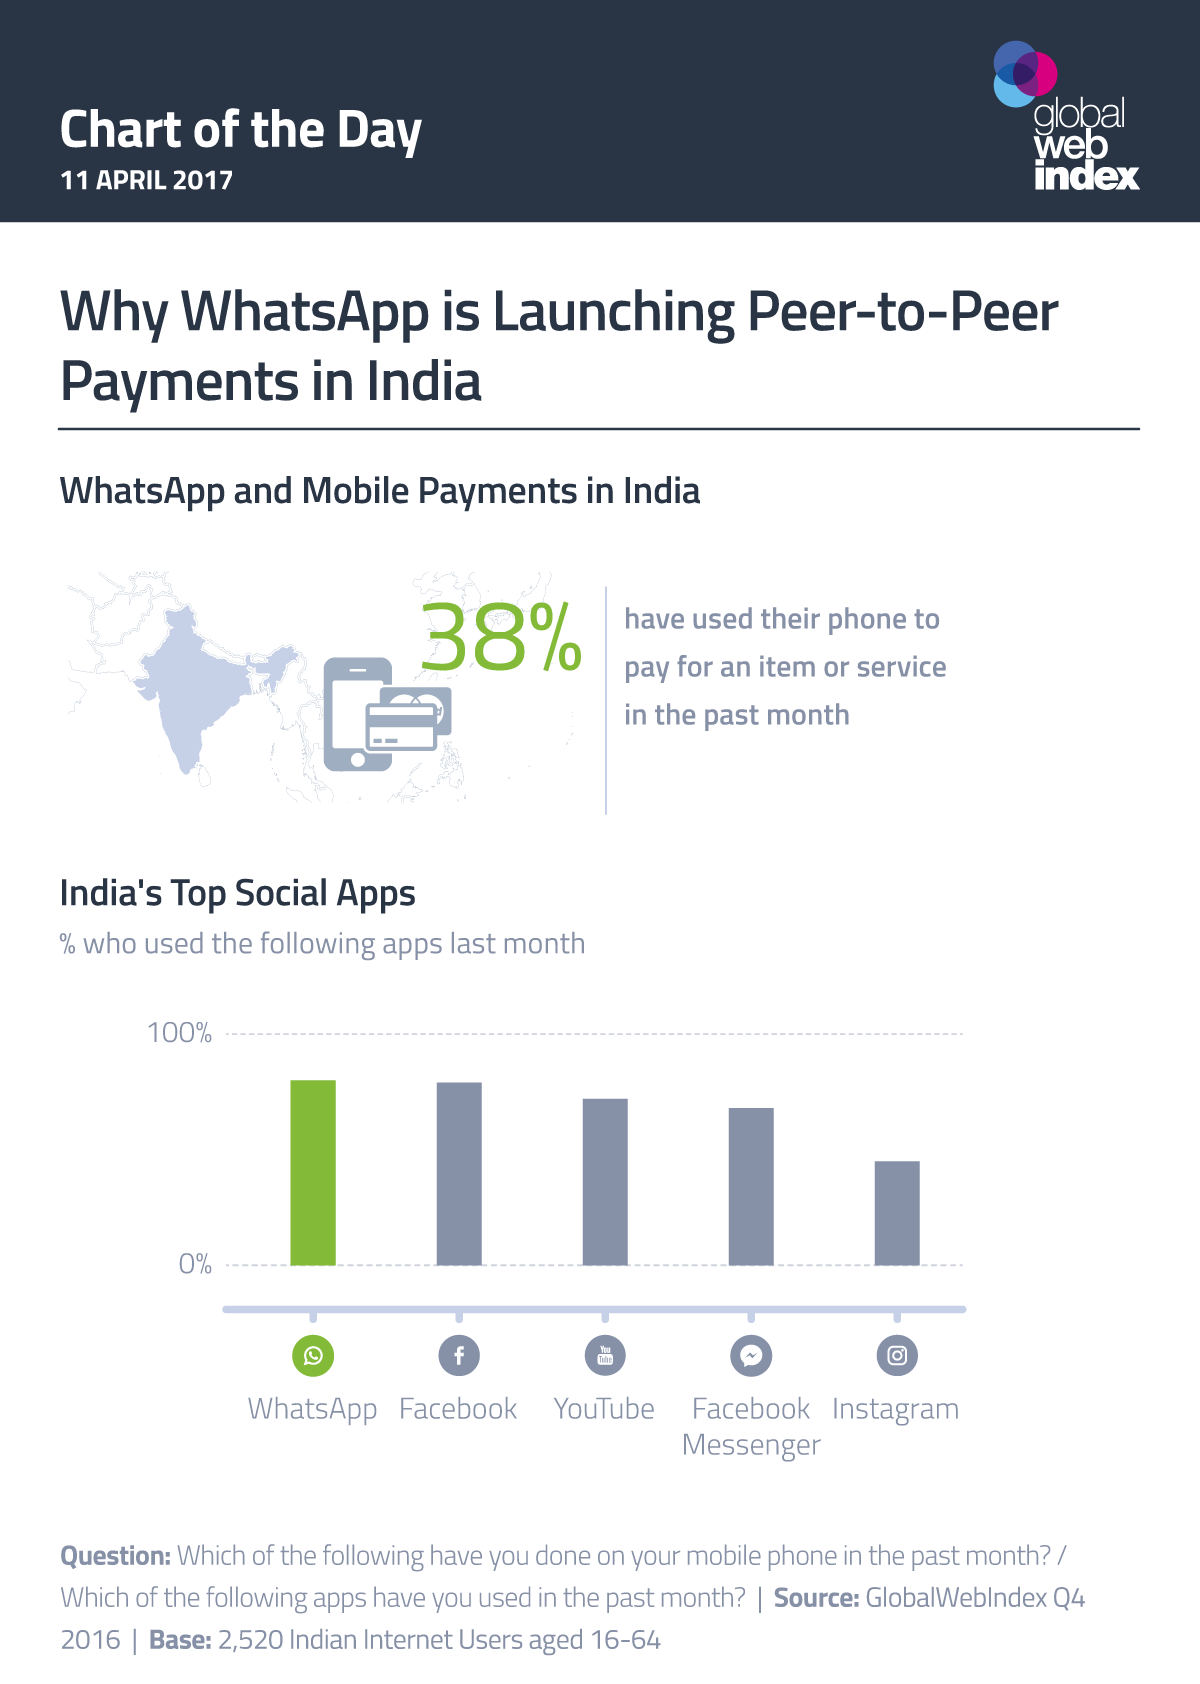 Why WhatsApp is Launching Peer-to-Peer Payments in India